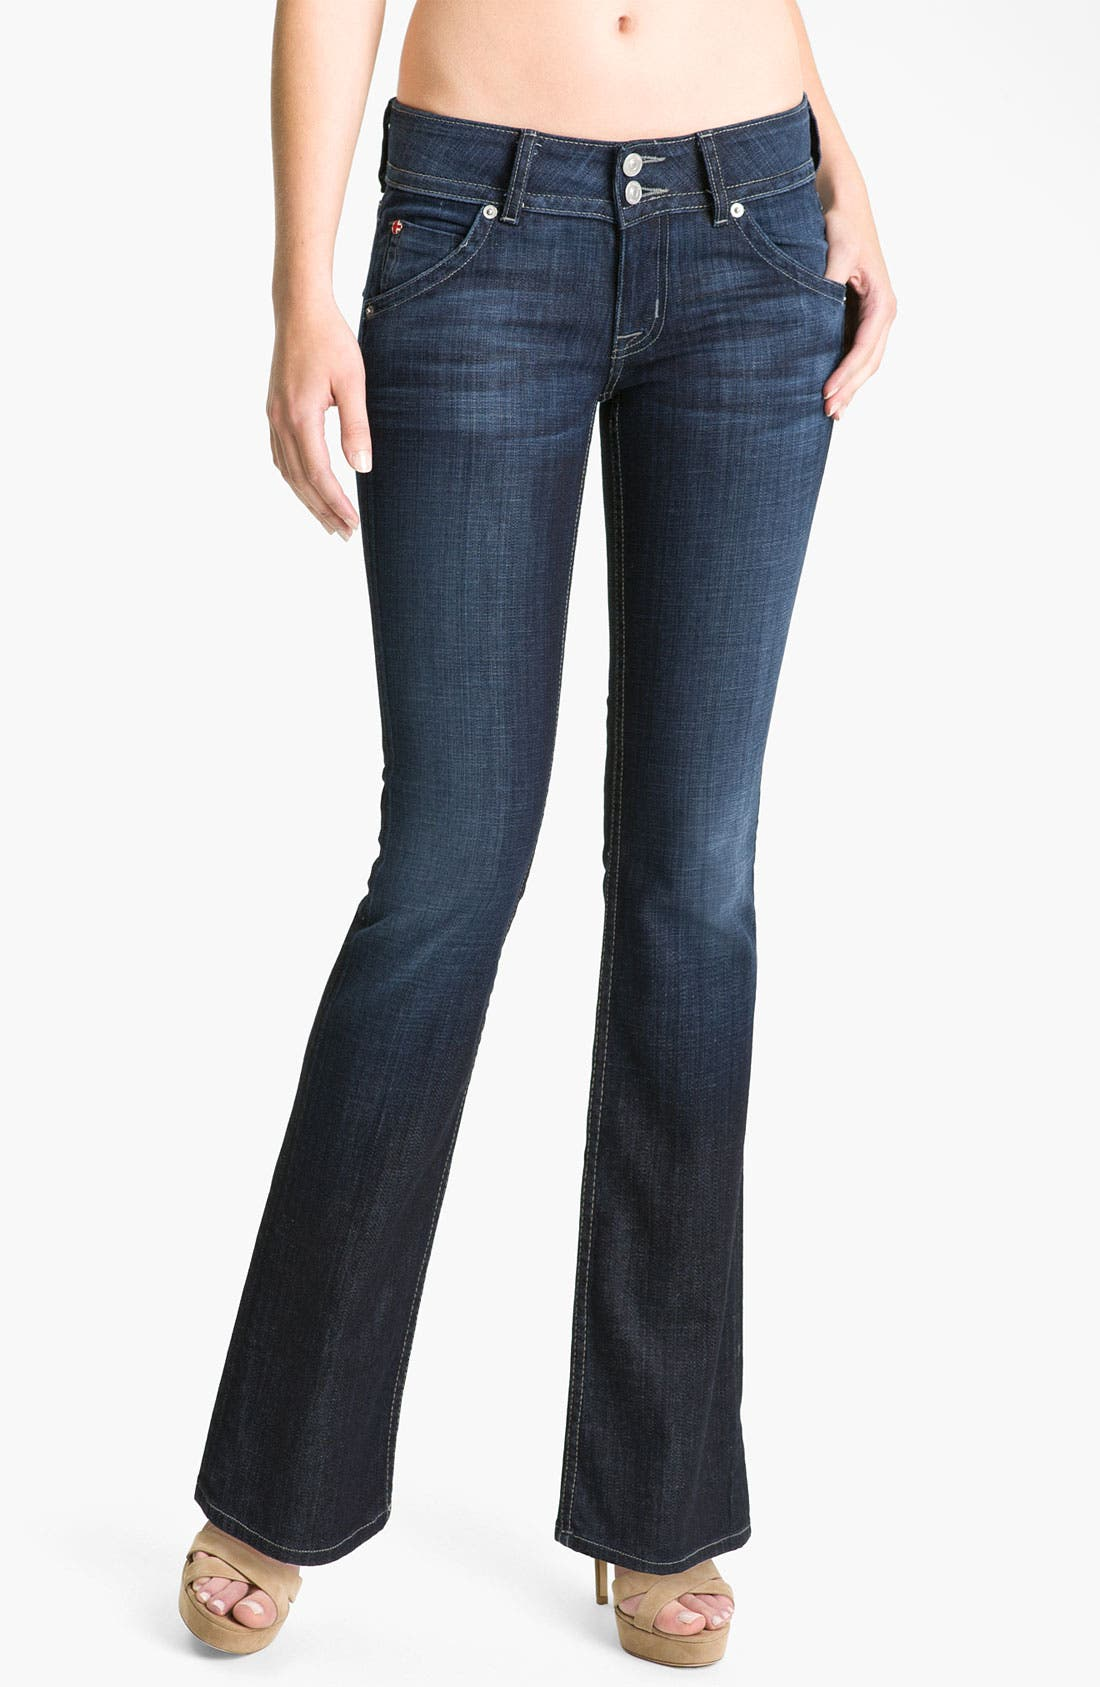 Alternate Image 1 Selected - Hudson Jeans Signature Flap Pocket Bootcut Jeans (Bowery)